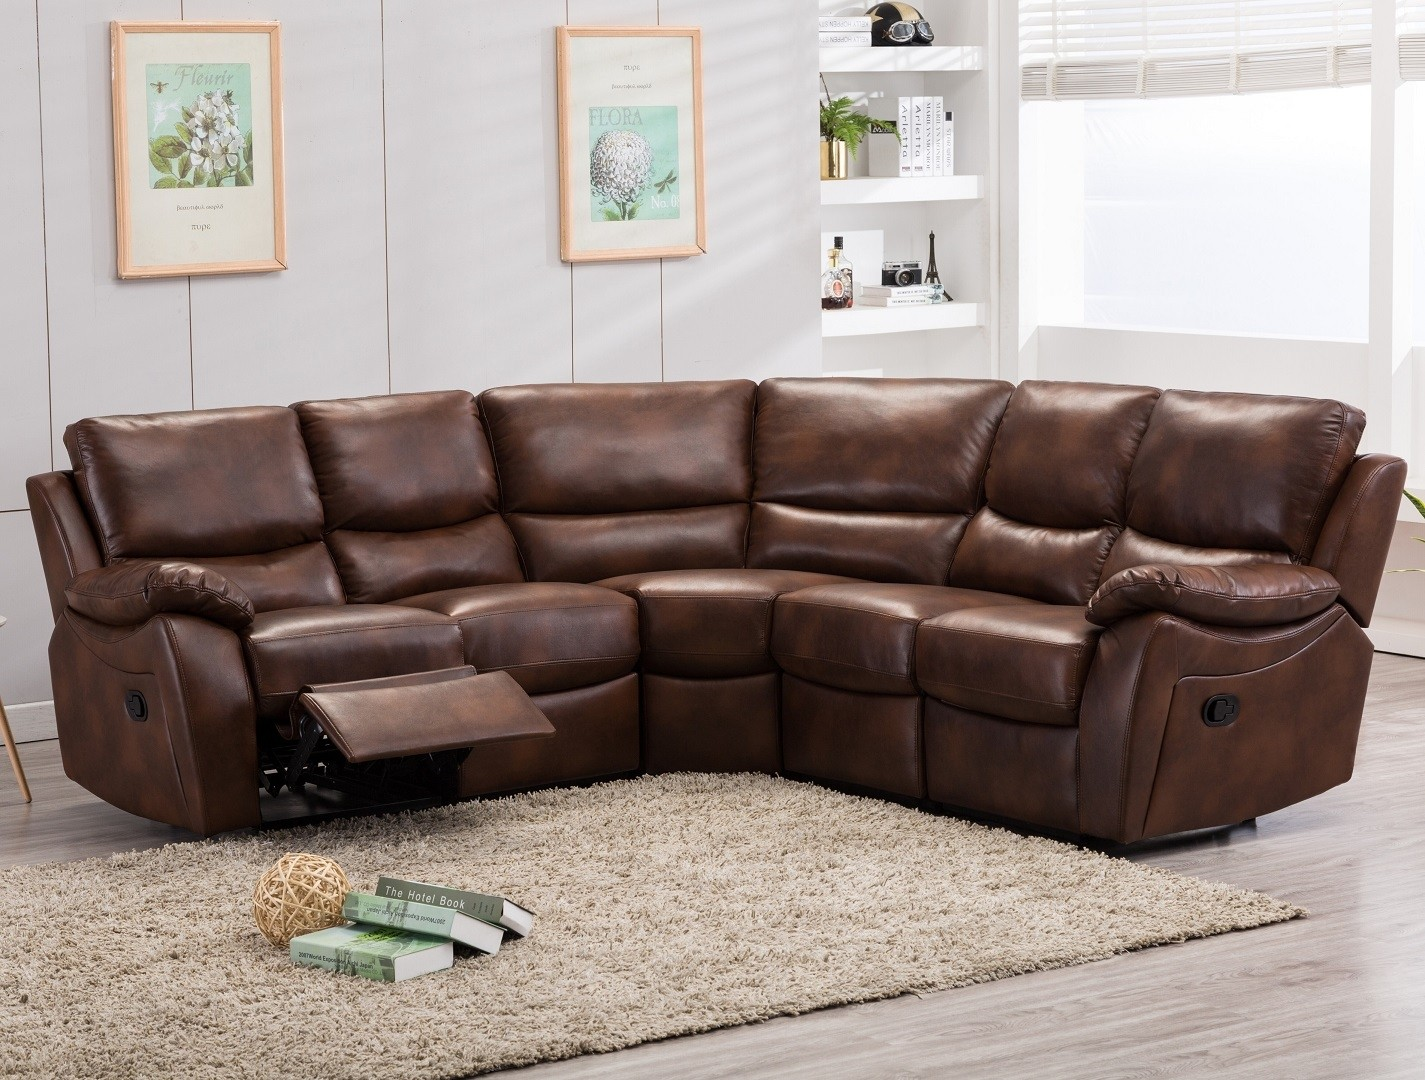 Curved Corner Reclining Sofa 5 Seater Leather Or Fabric